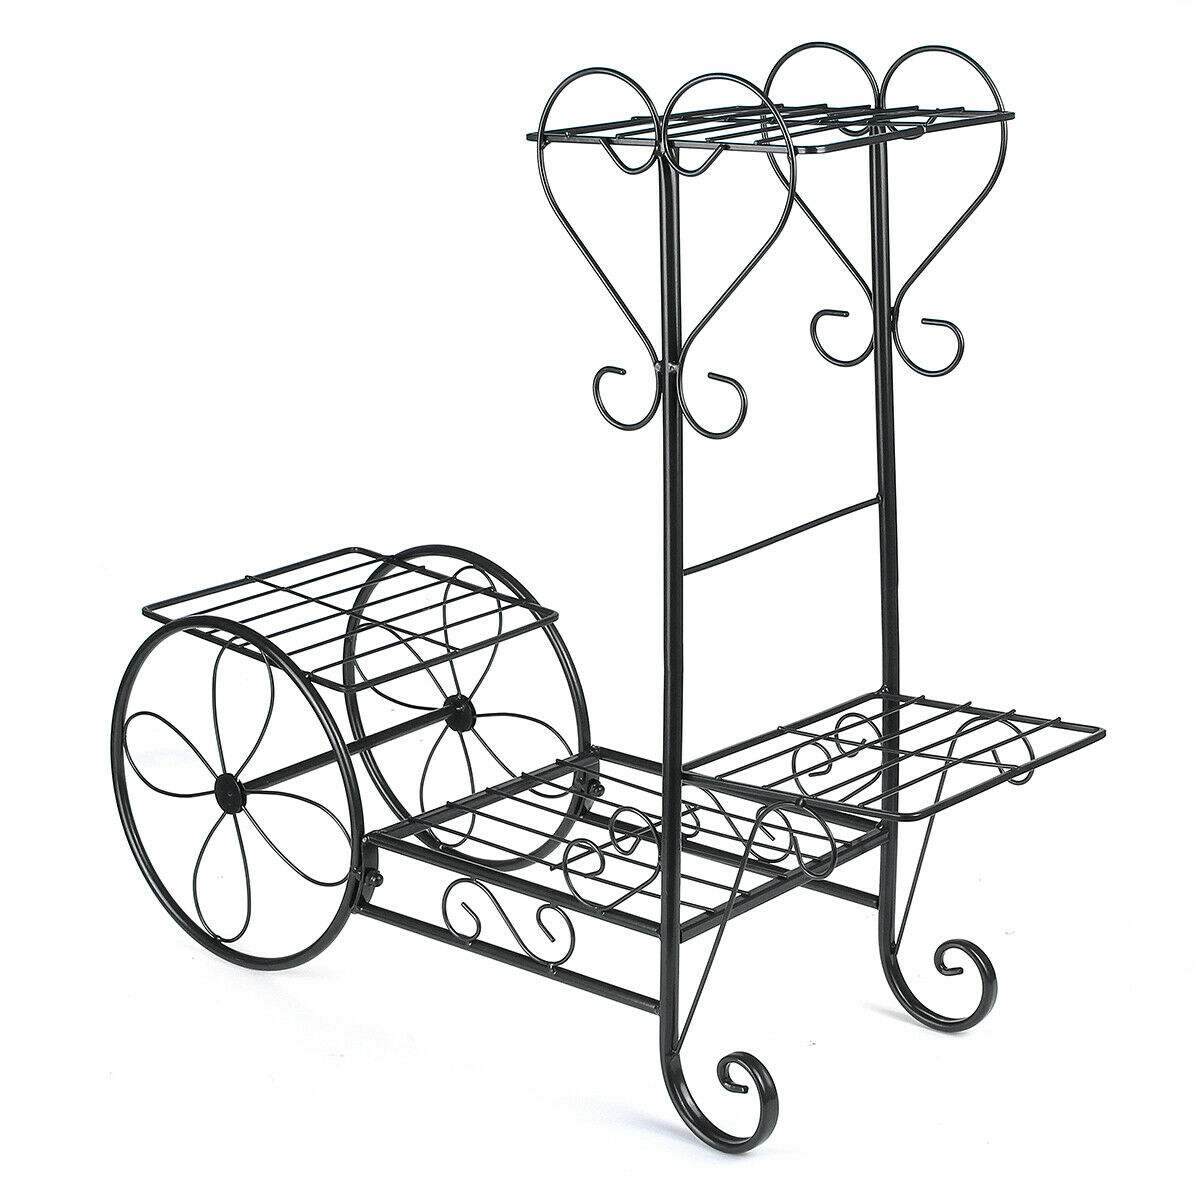 shop online up to 80% off 4 Tiers Metal Plant Flower Stand